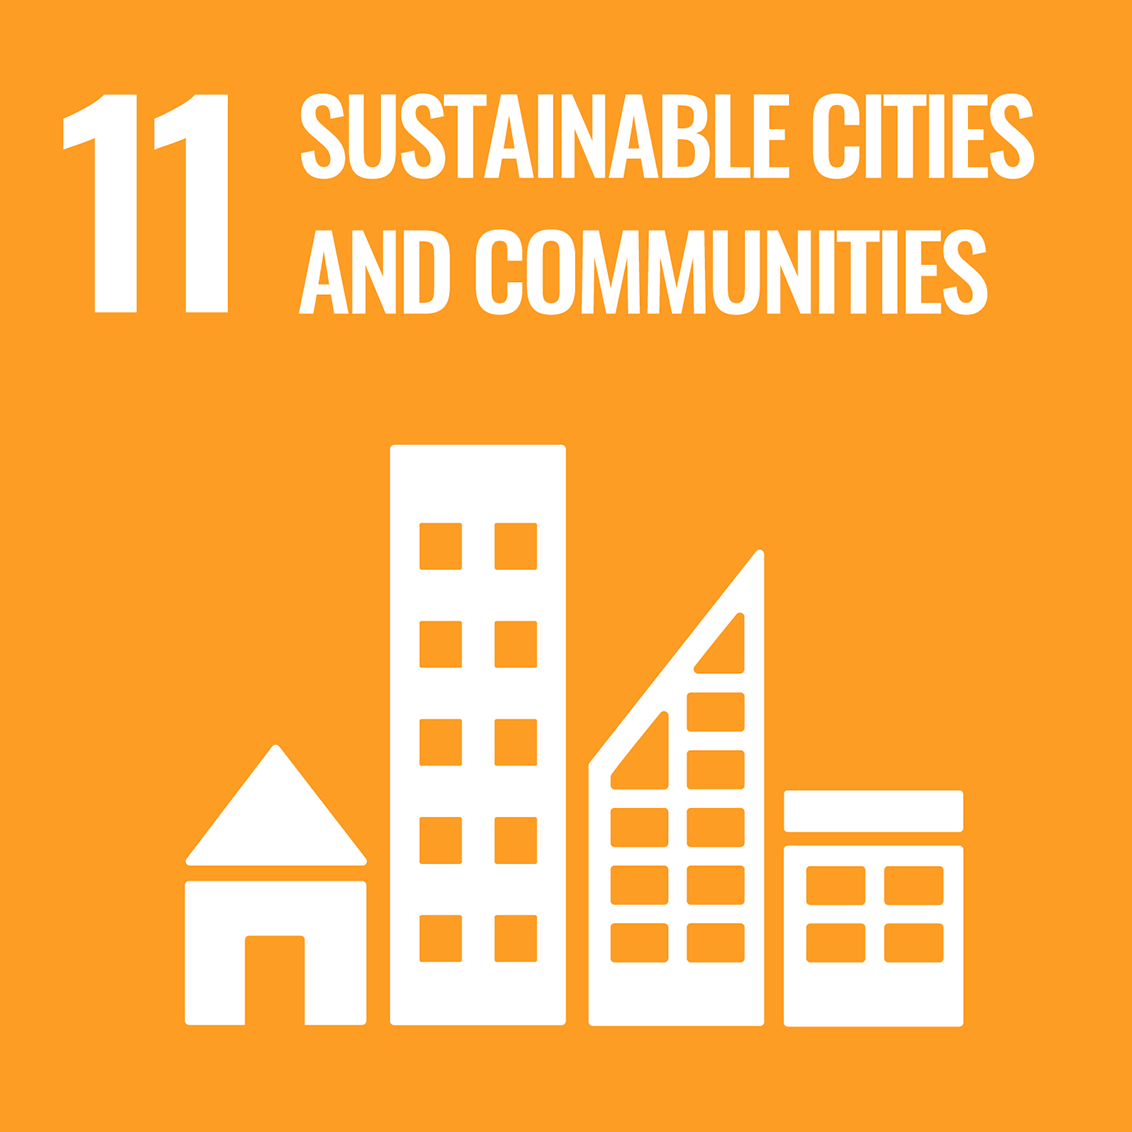 Icon for the UN Sustainable Development Goal 11